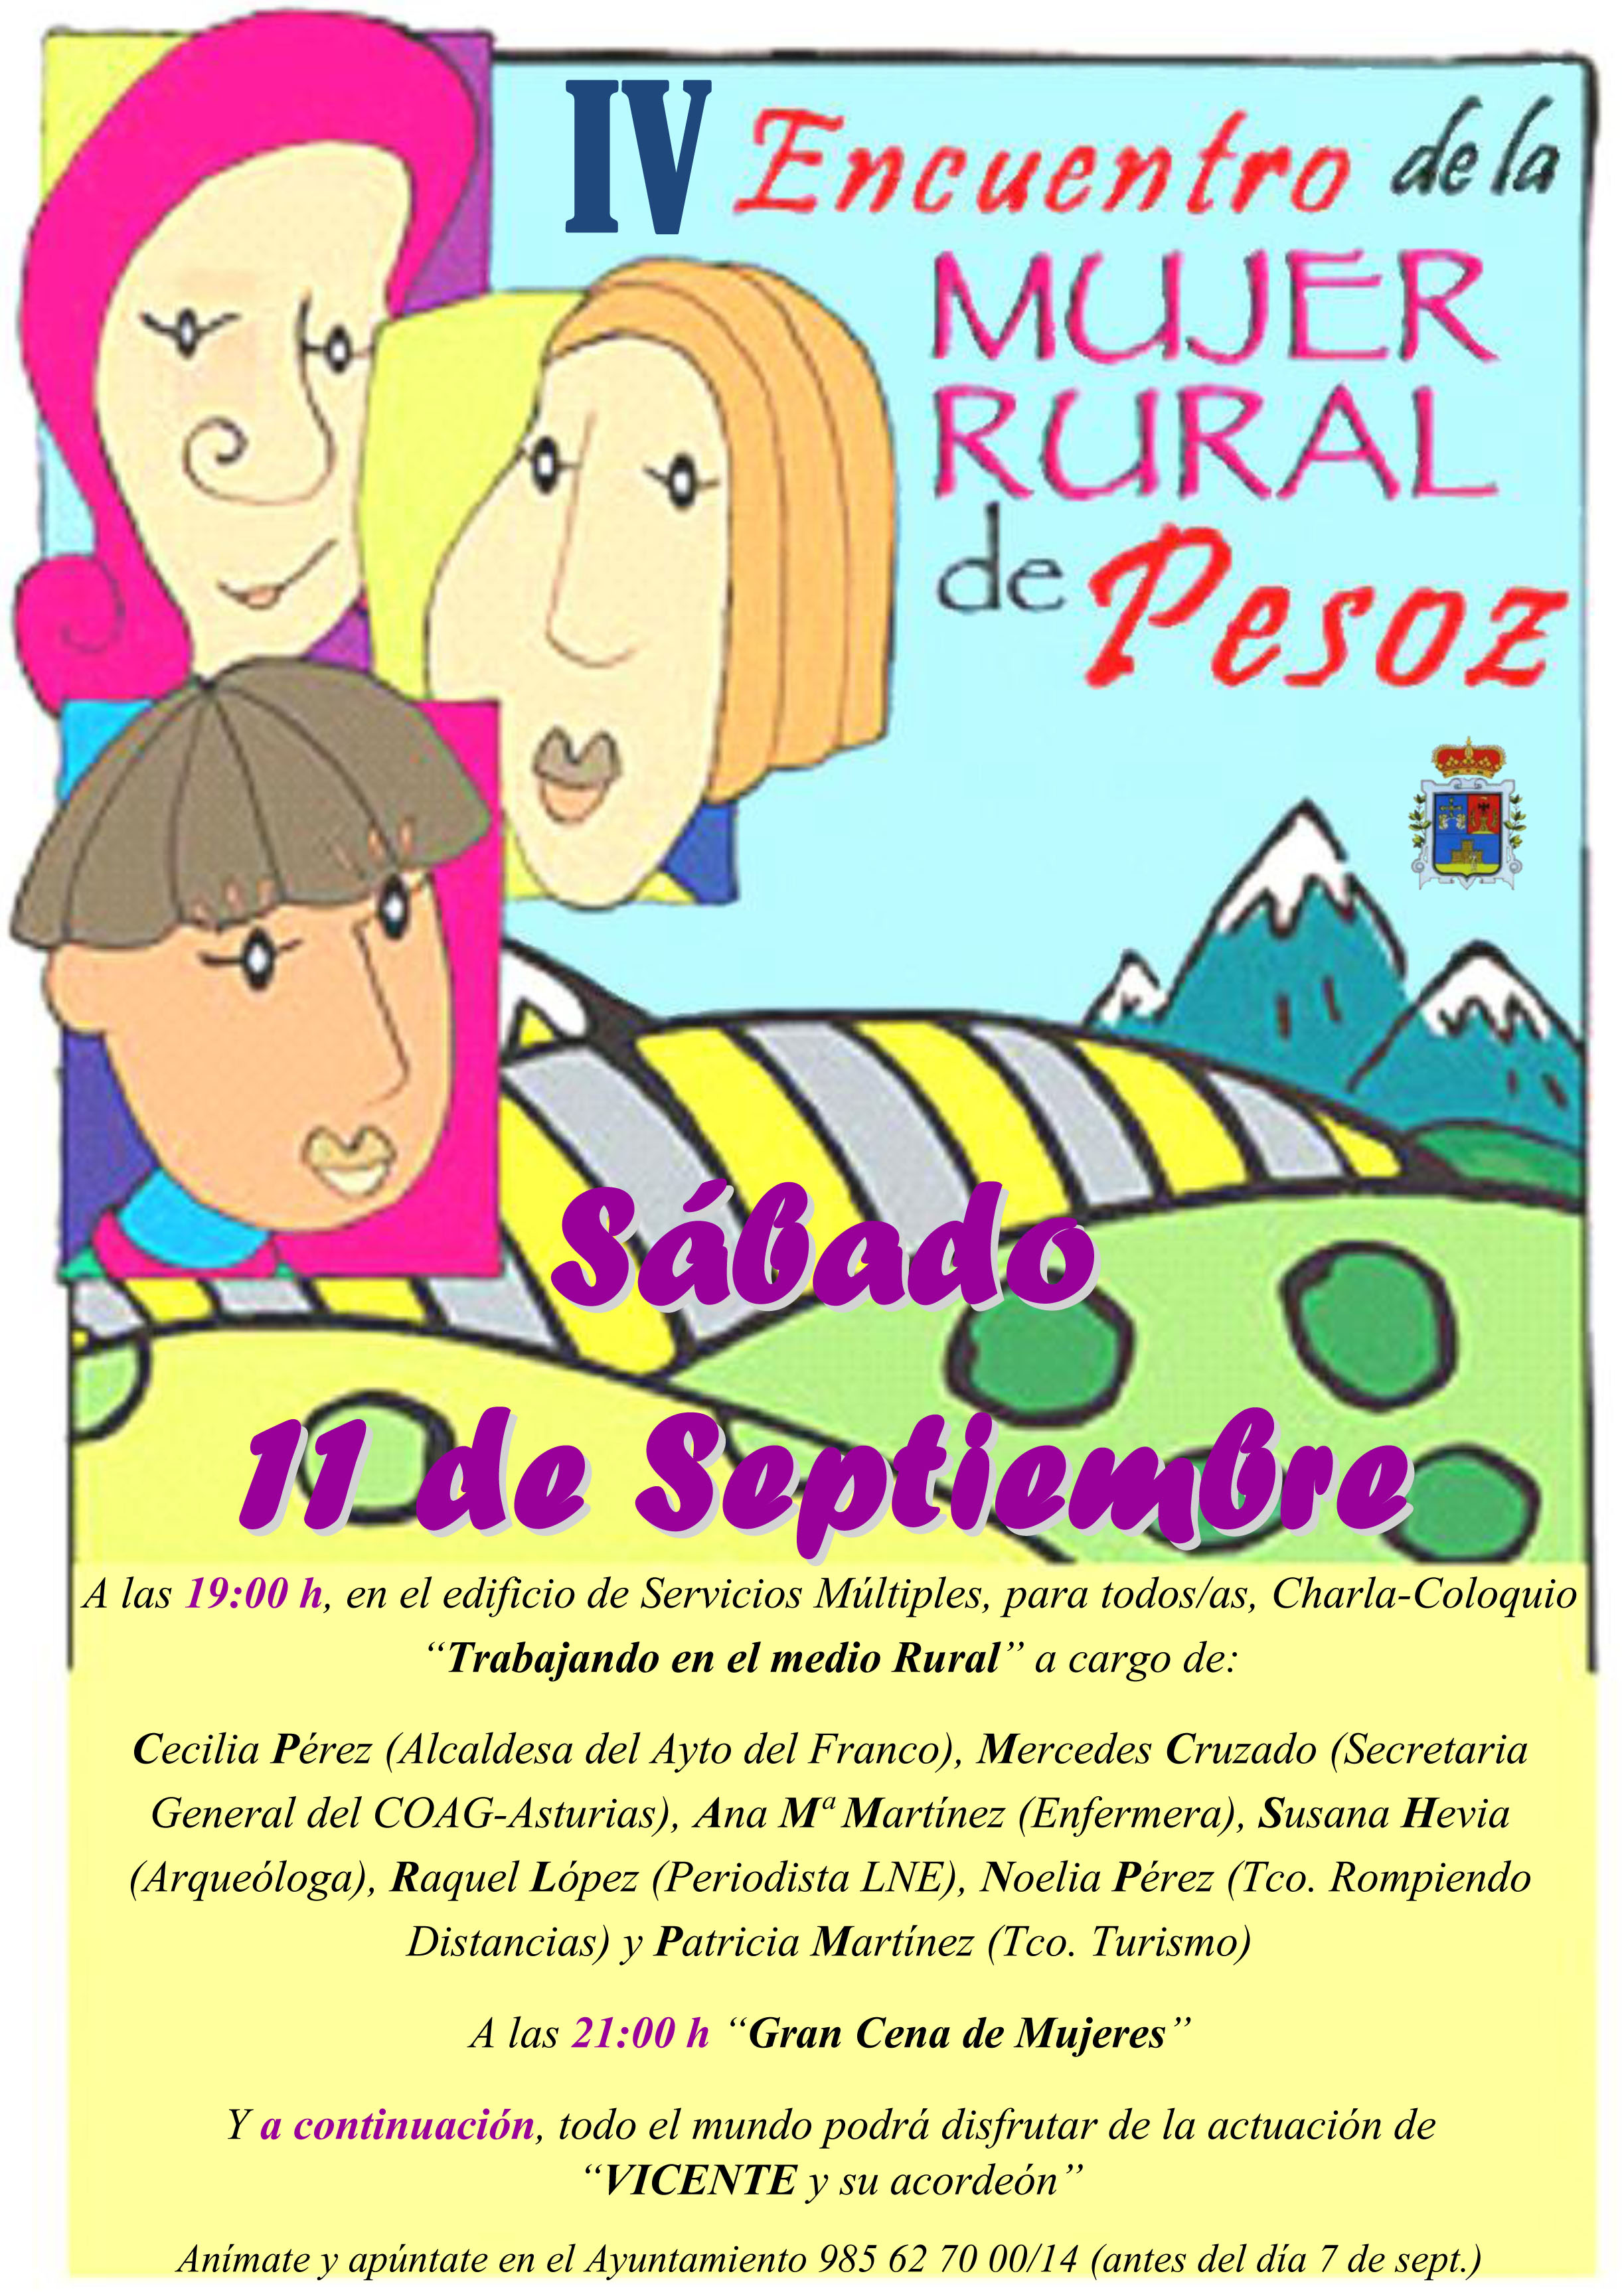 IV Encuentro Mujer Rural